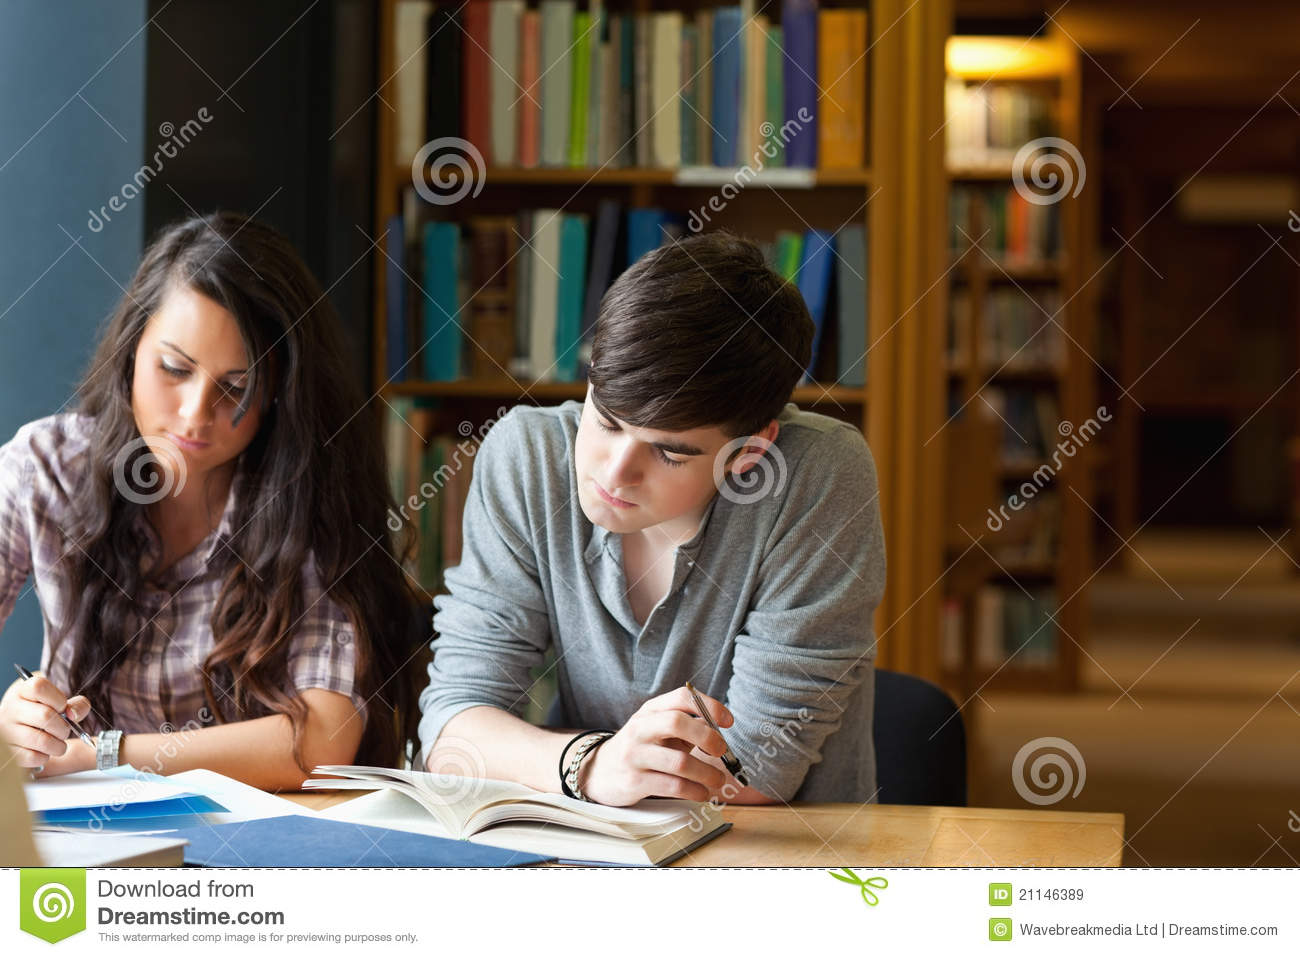 Case importance of national language essay natural and